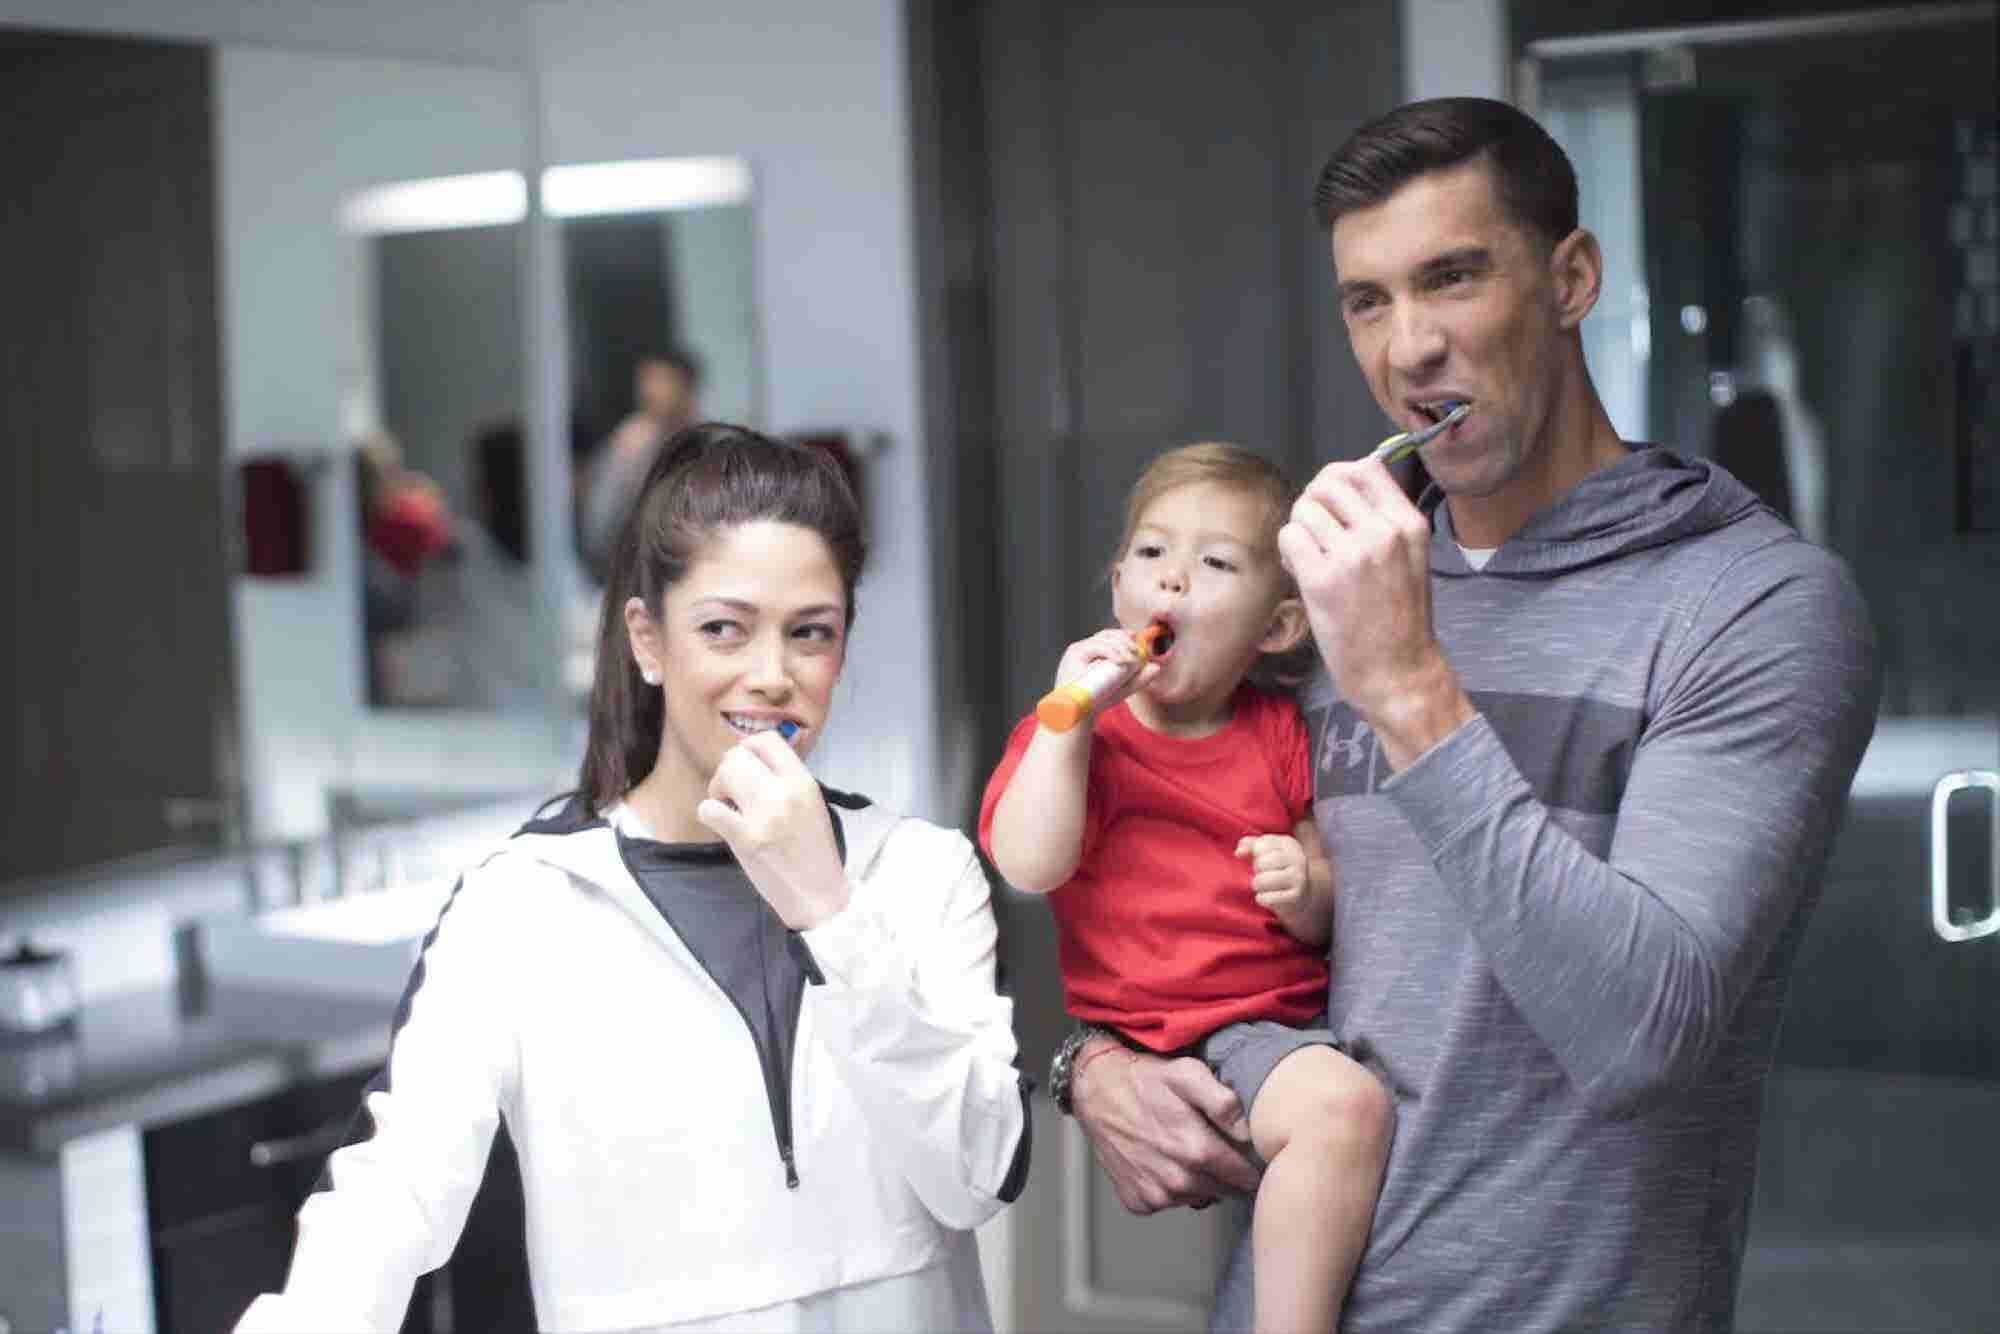 Michael Phelps Even Brushes His Teeth Better Than You Do